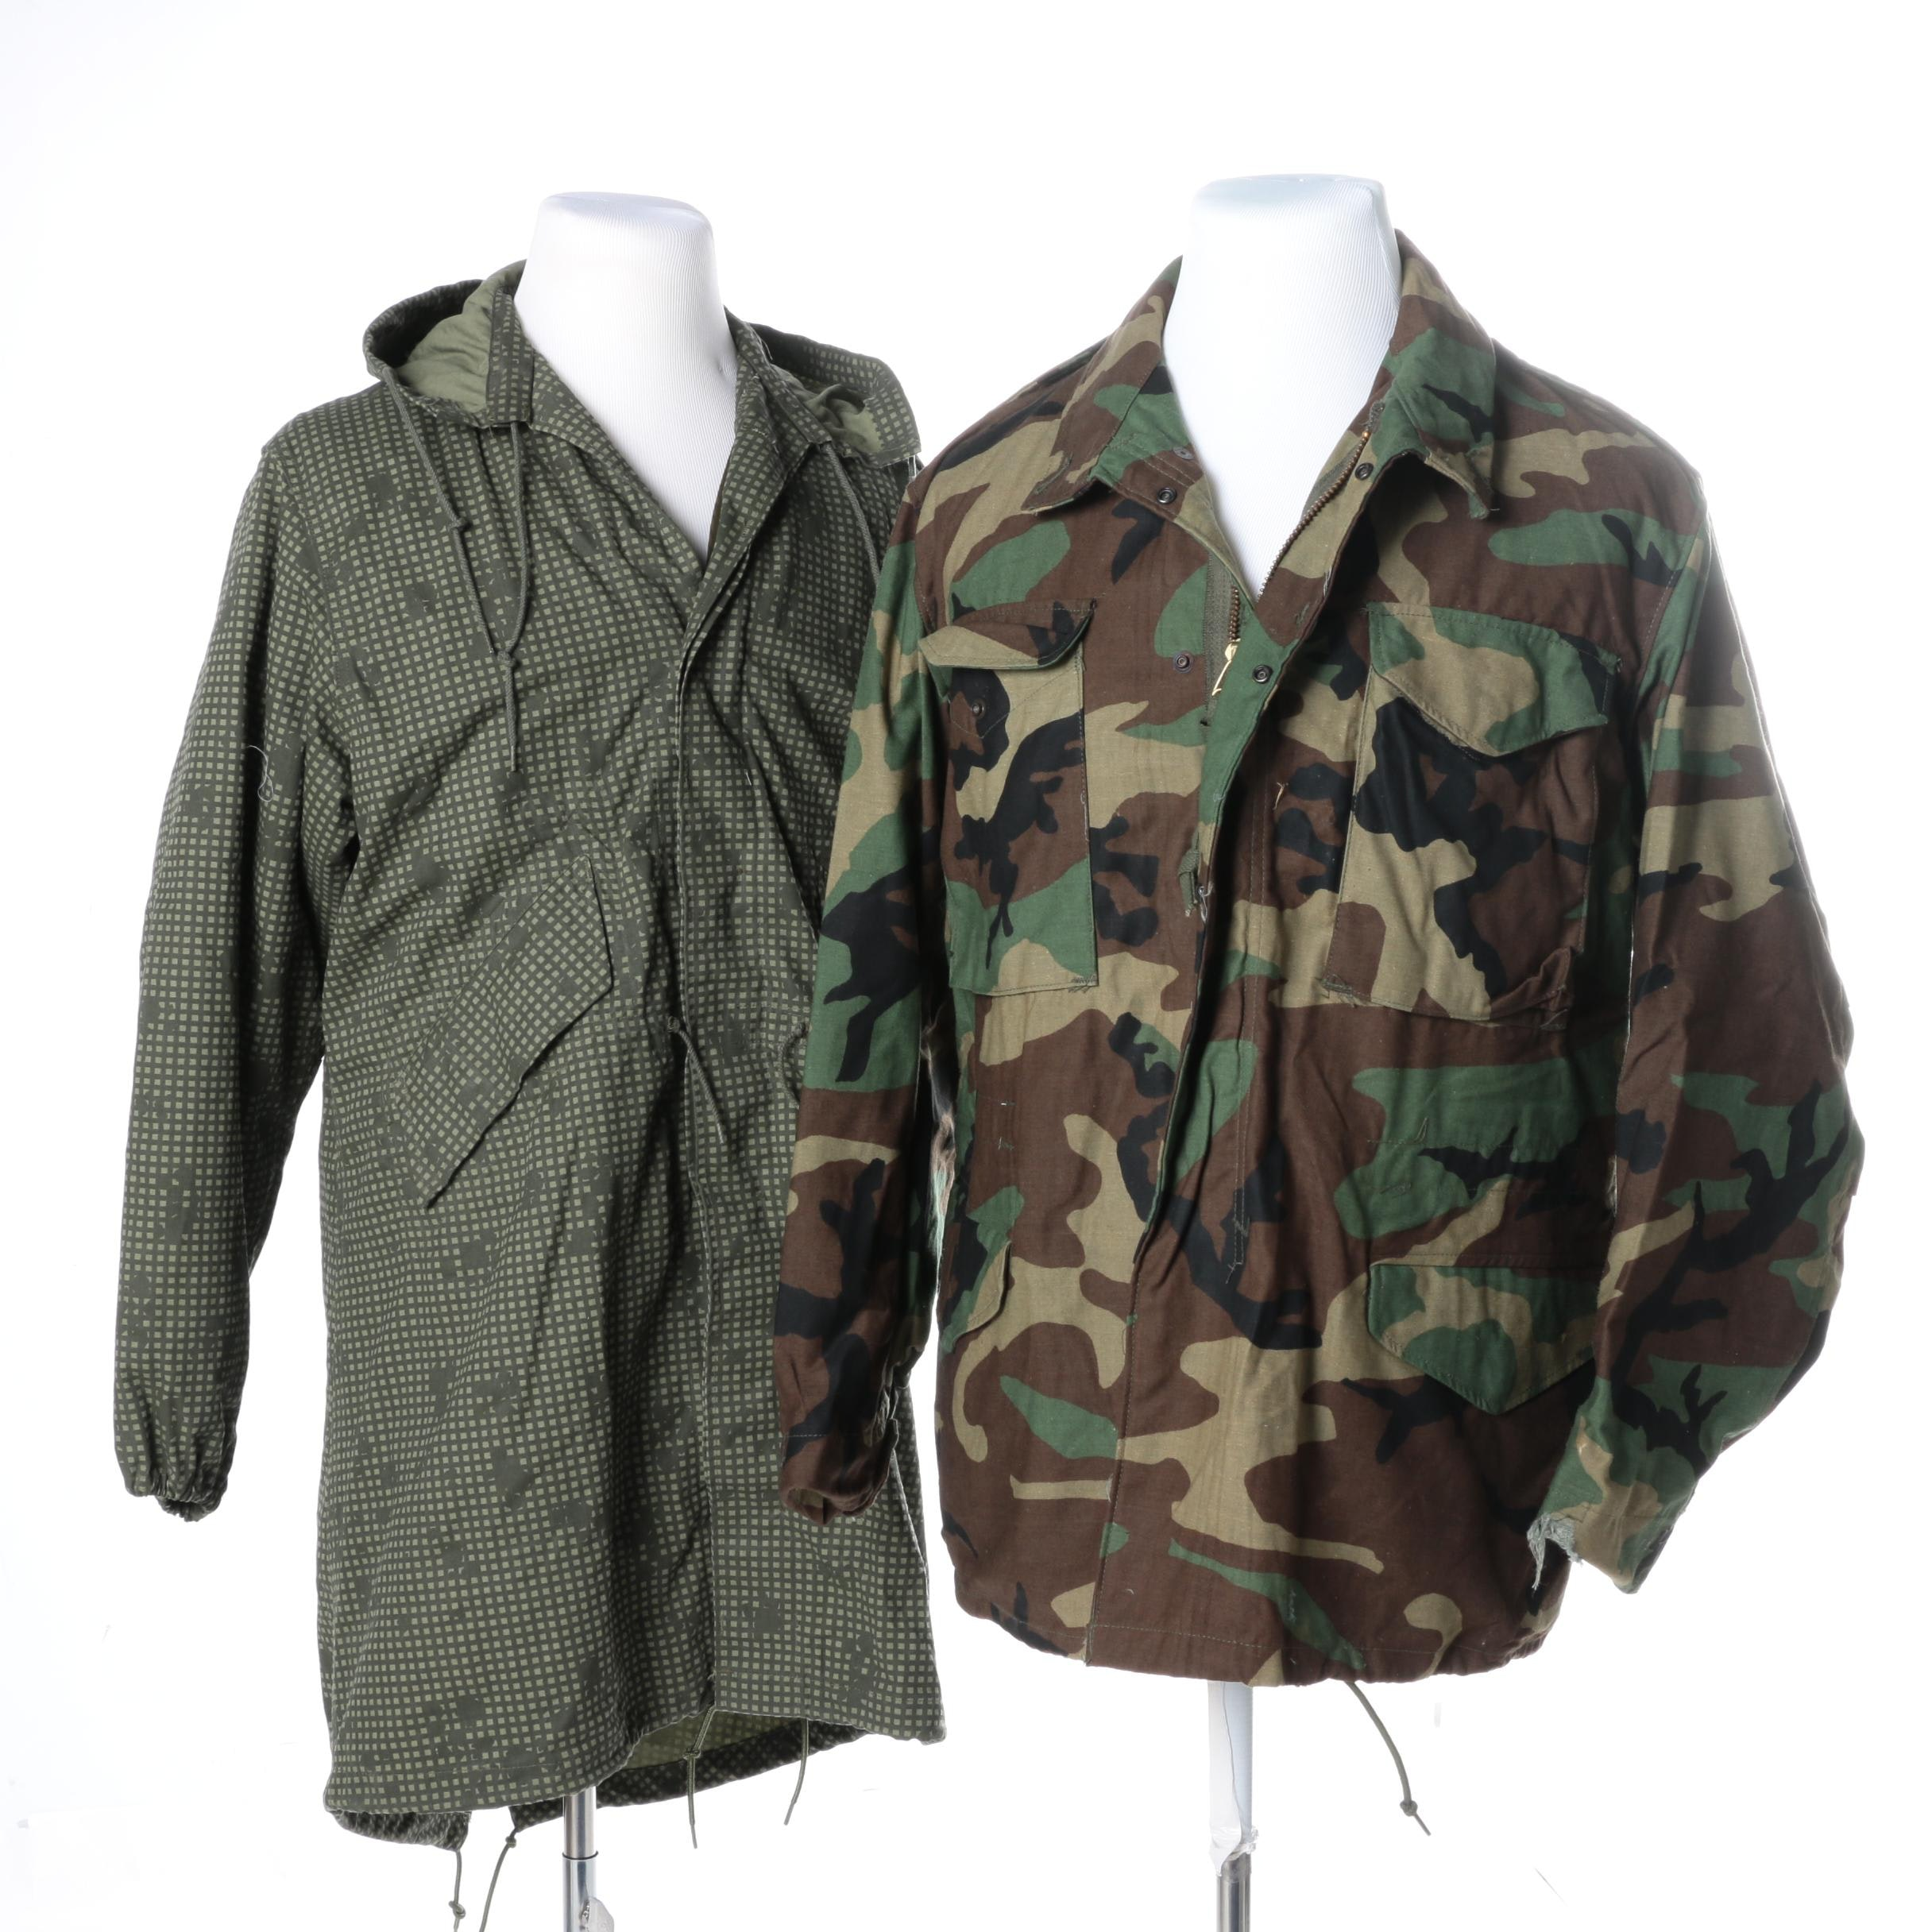 Camouflage Print Tactical Jackets